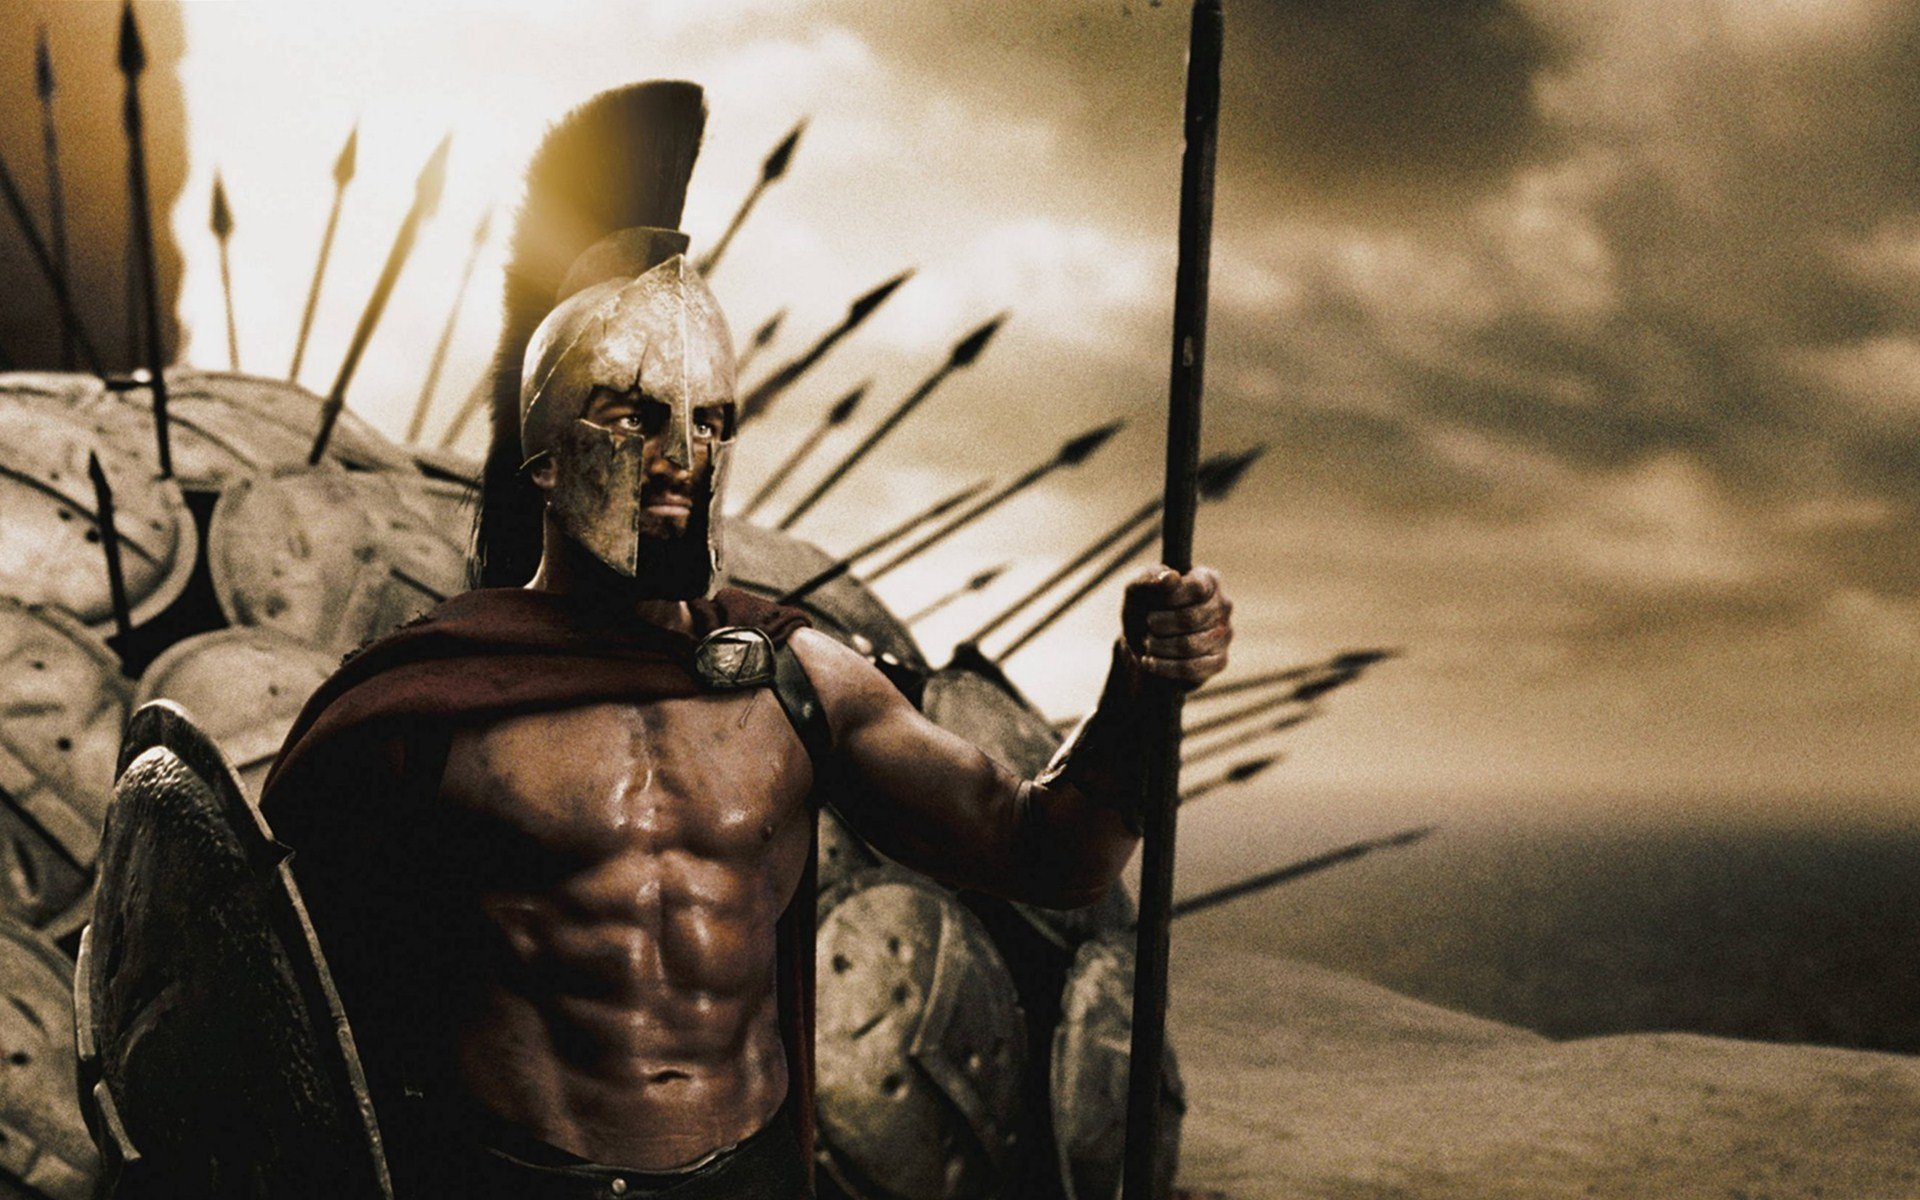 300 spartans wallpaper wallpapers - photo #18